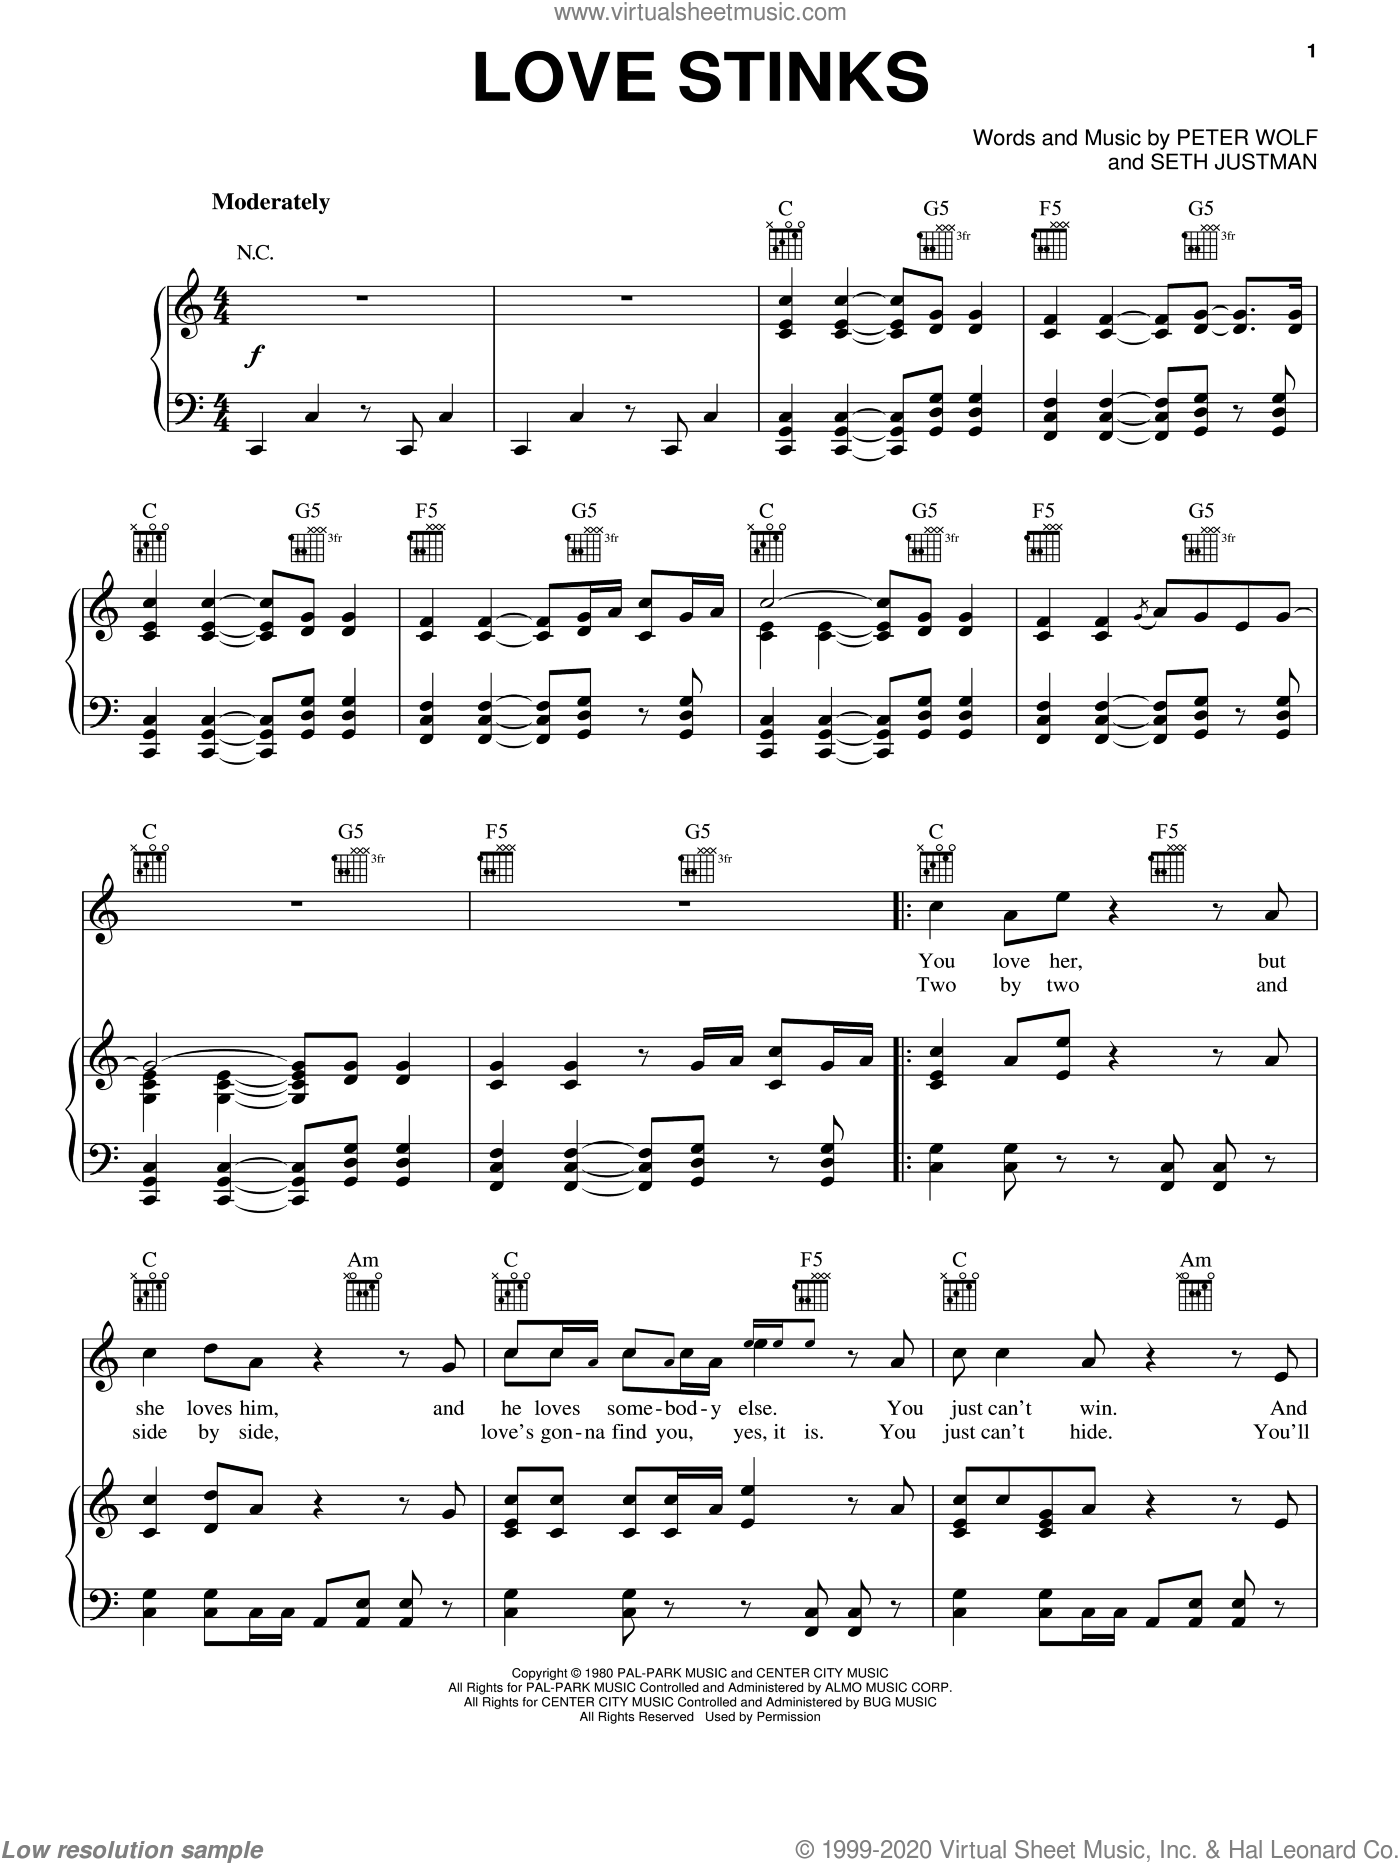 Love Stinks sheet music for voice, piano or guitar by J. Geils Band, Peter Wolf and Seth Justman, intermediate skill level